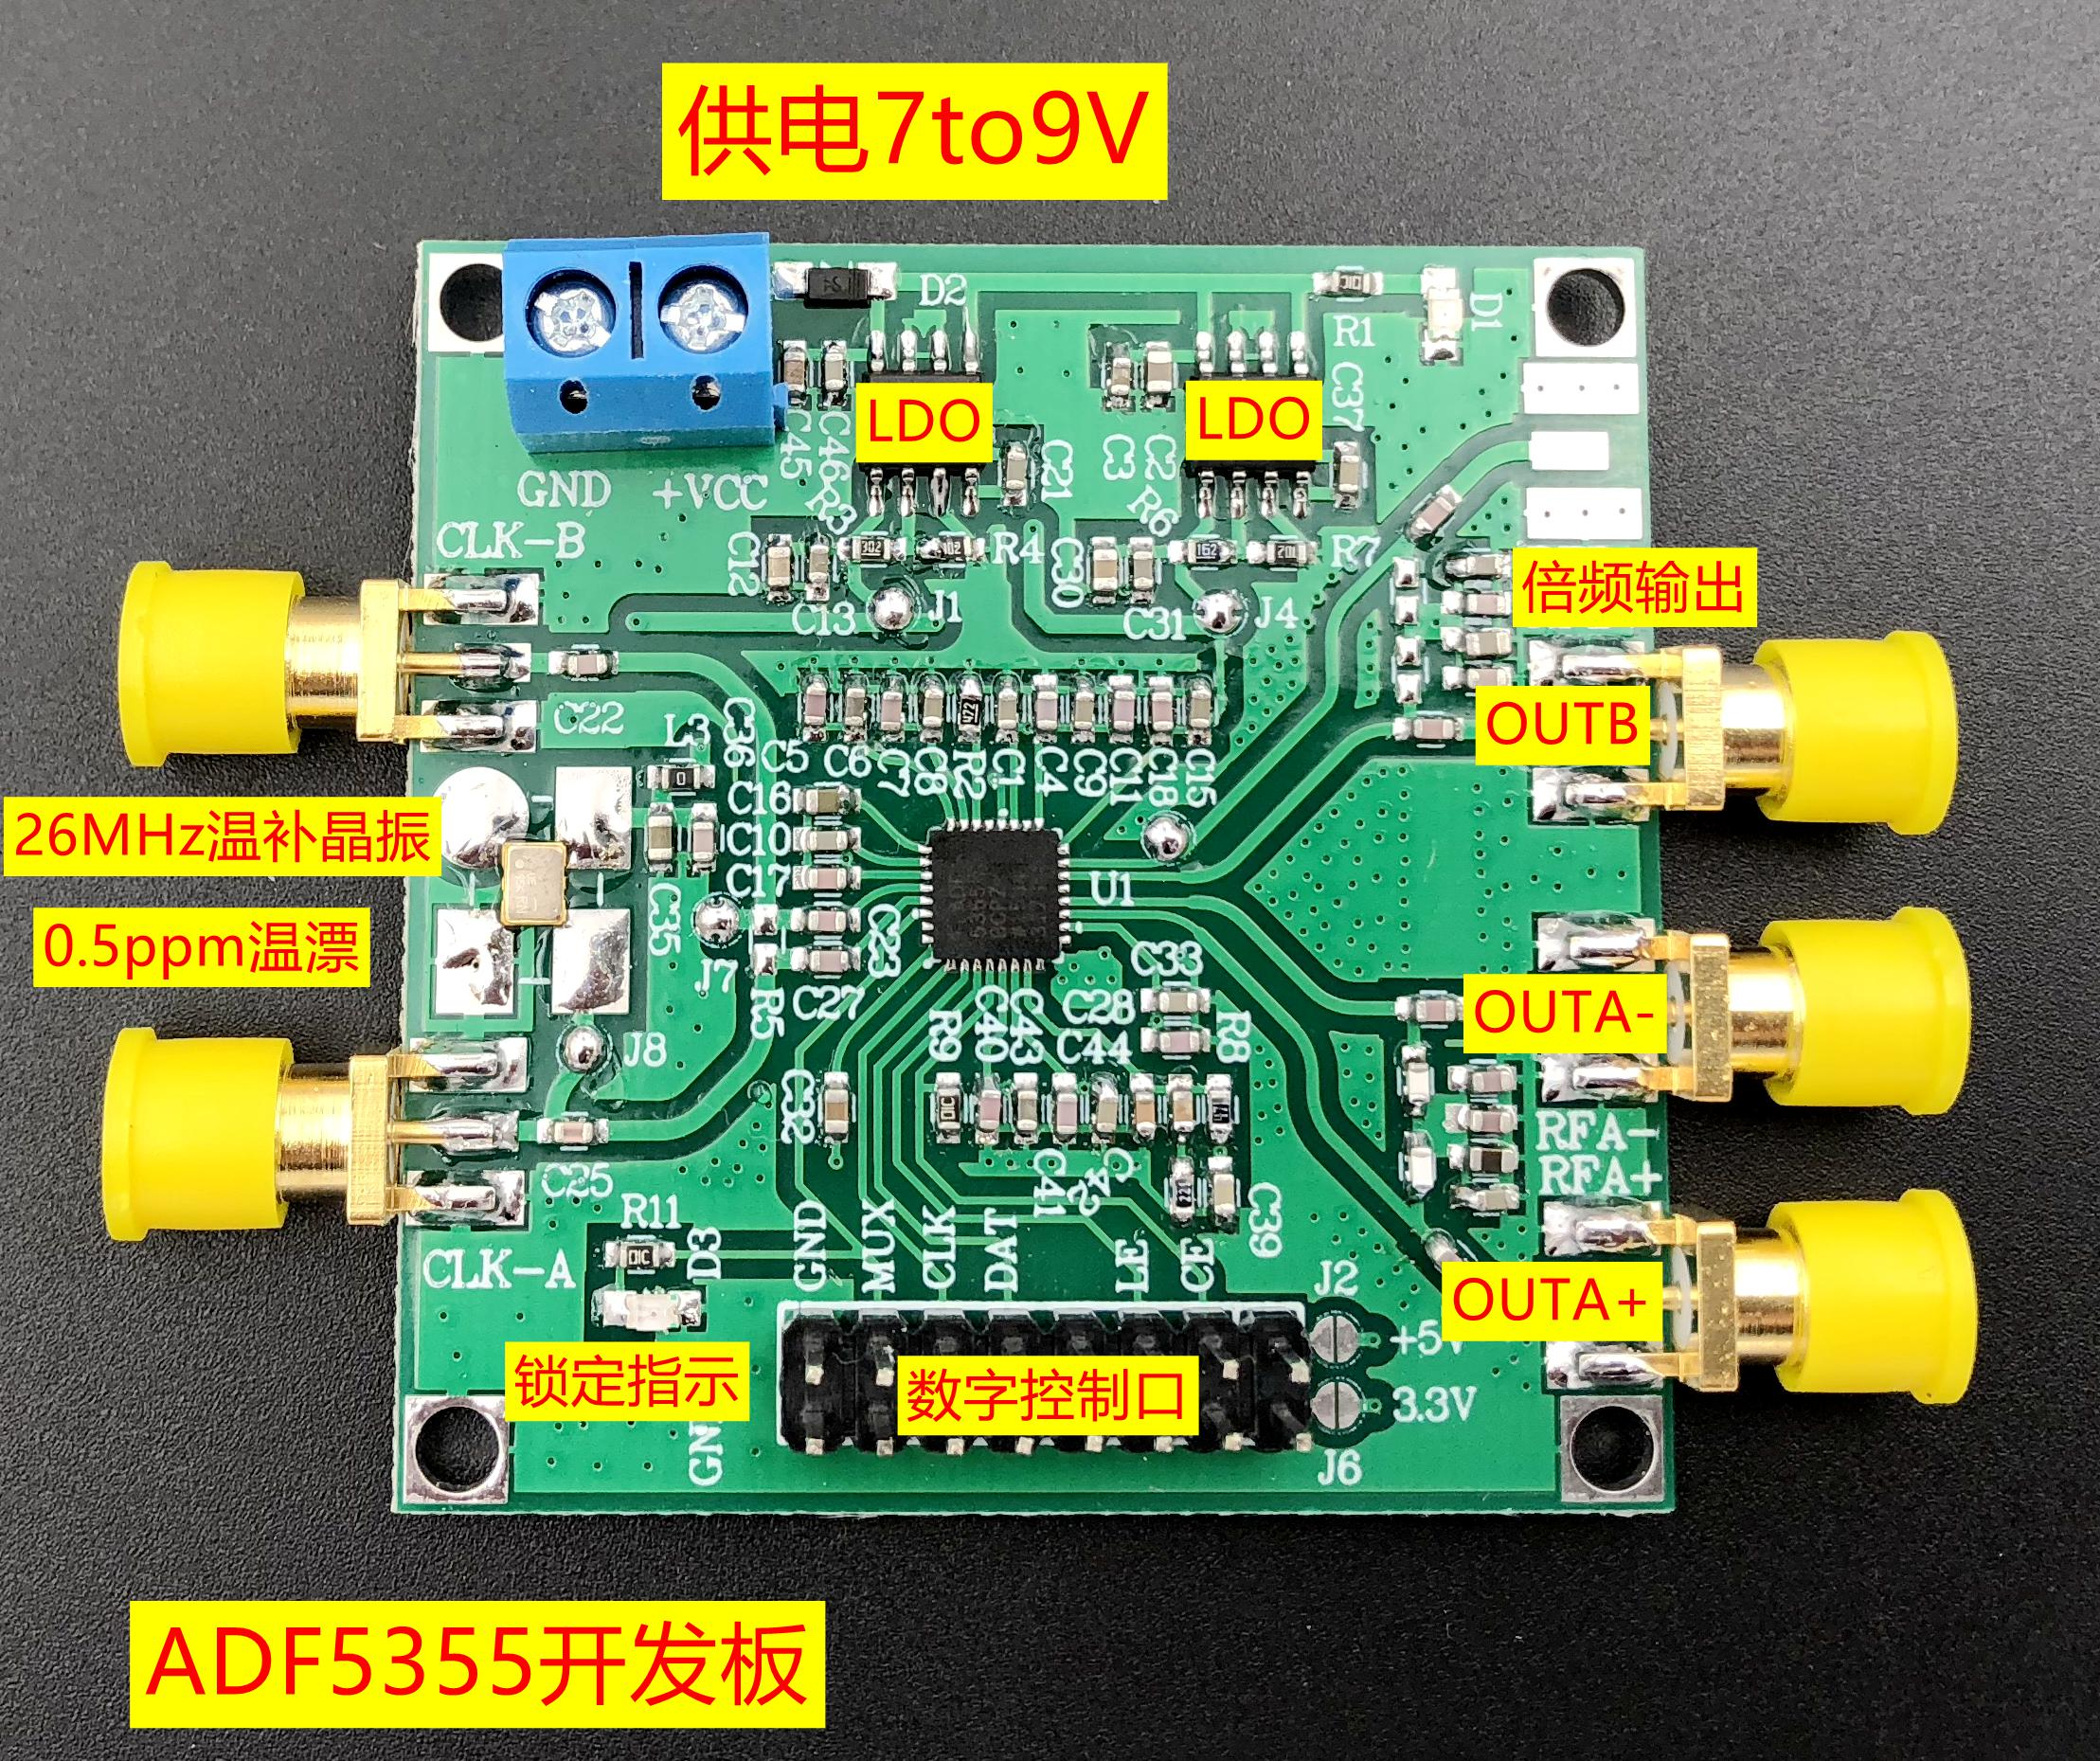 ADF5355 Official Website Host PC PLL RF Source 54 MHz-13600 MHz